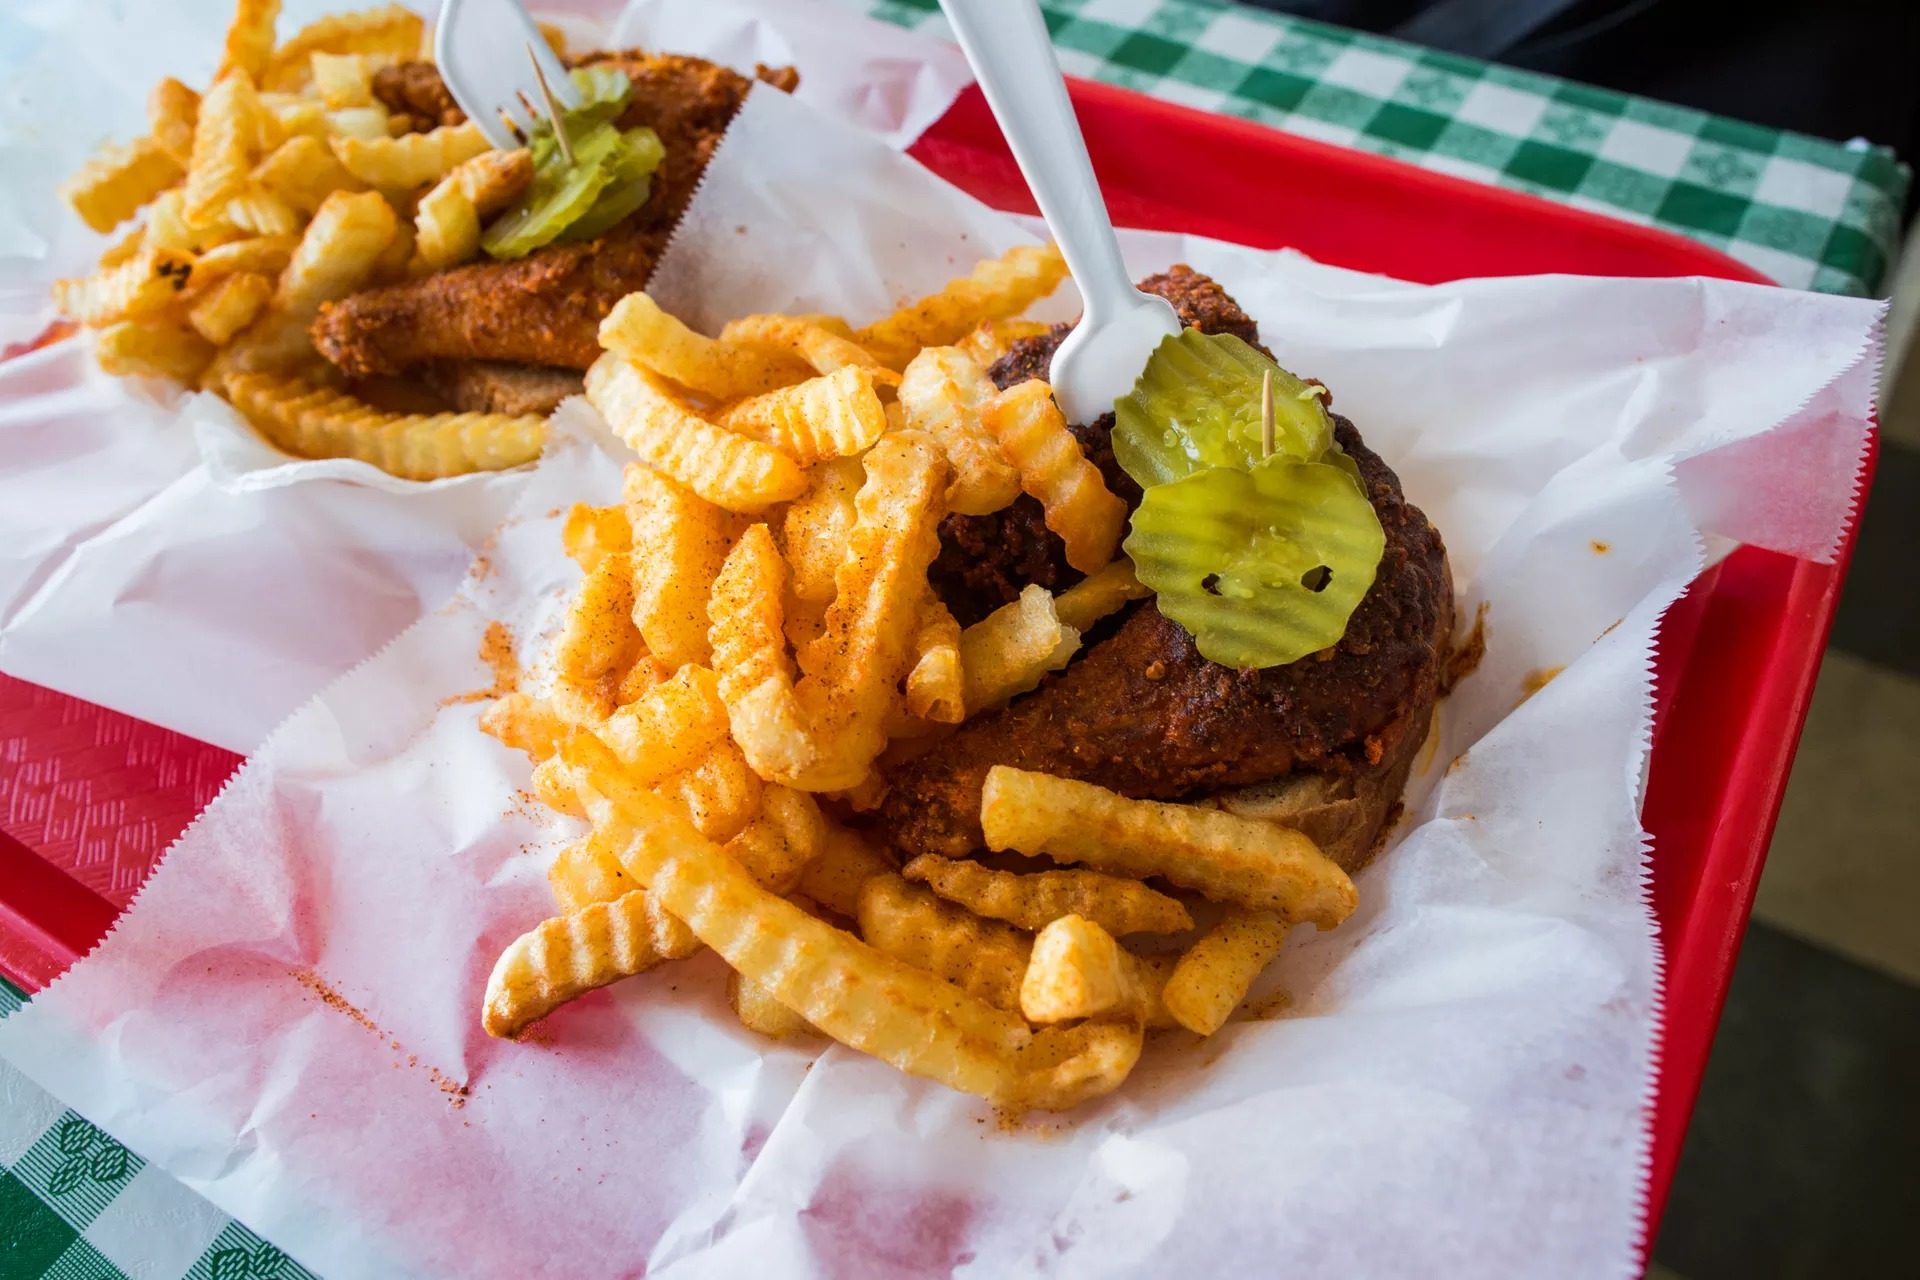 Hot chicken with crinkle cut fries and pickels on top